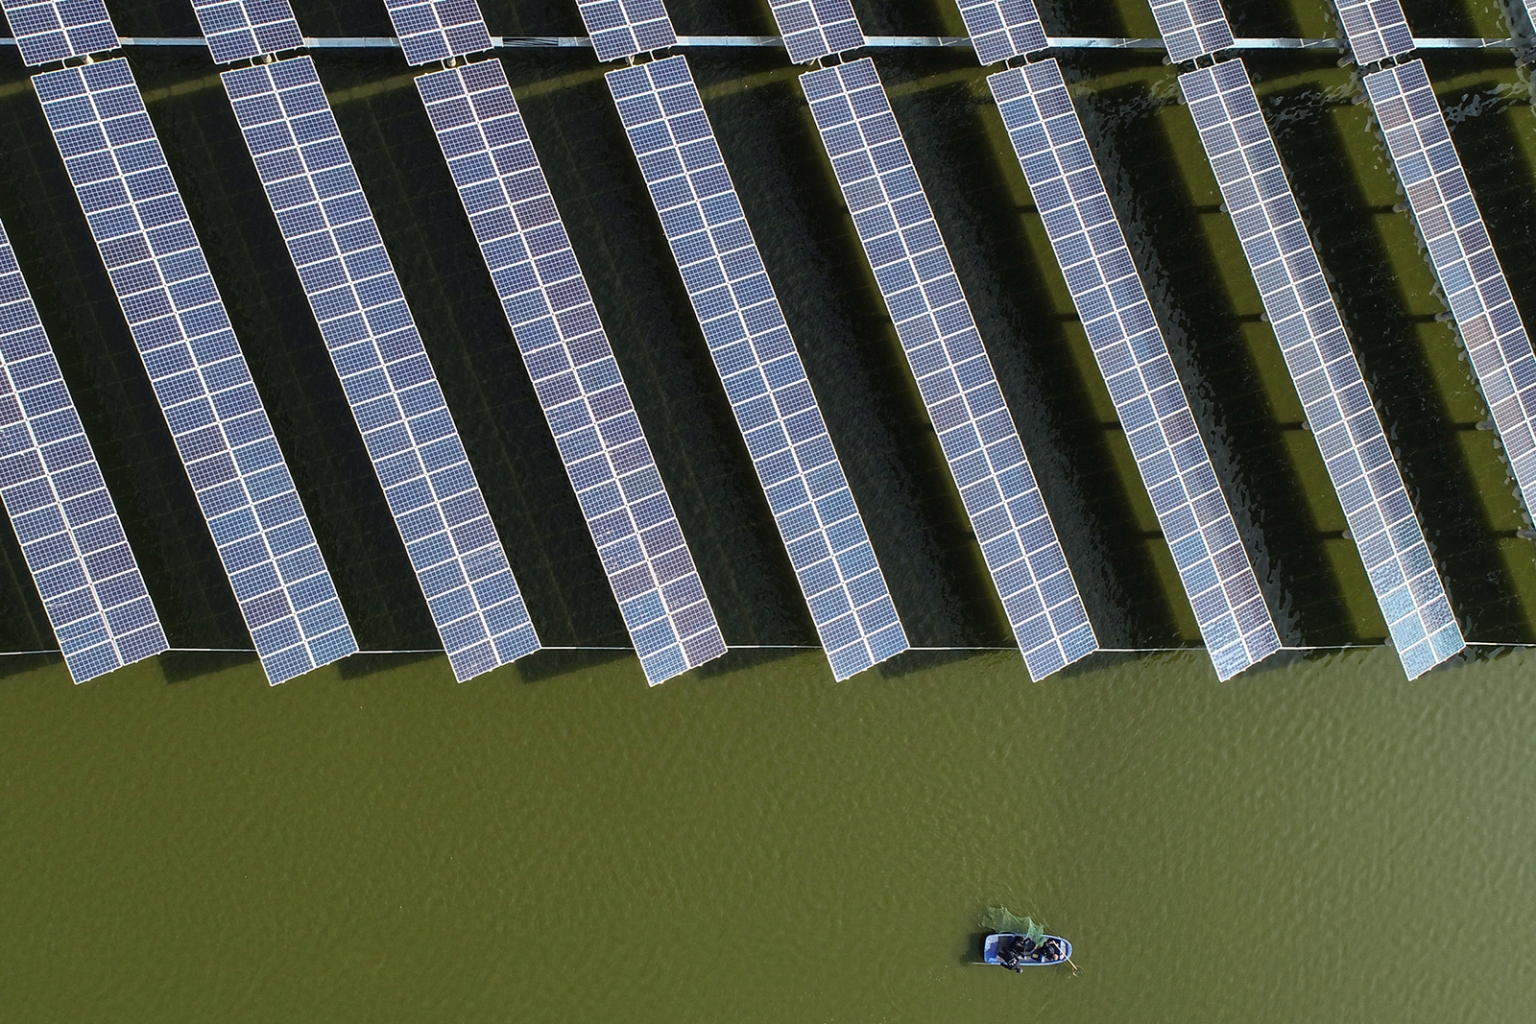 Chinese fishermen float next to a photovoltaic power station built atop fish ponds in Yangzhou in China's eastern Jiangsu province on Nov. 14. STR/AFP/Getty Images